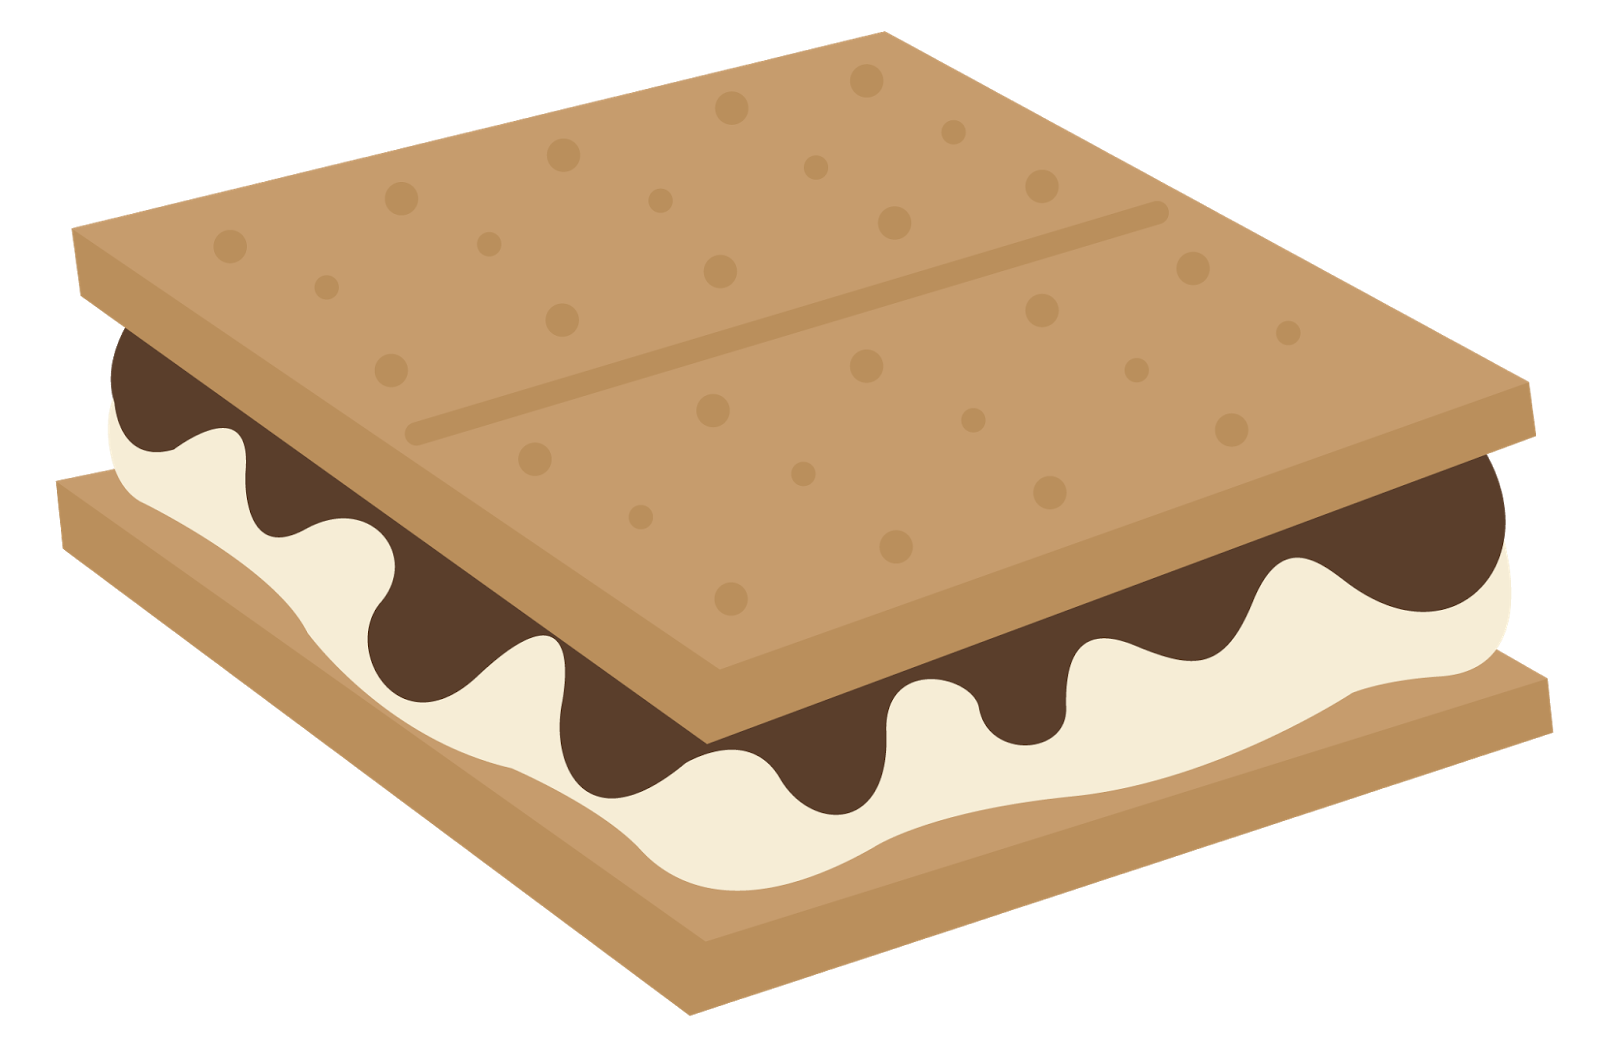 Smore s clipart image royalty free download Smore Clipart & Look At Clip Art Images - ClipartLook image royalty free download